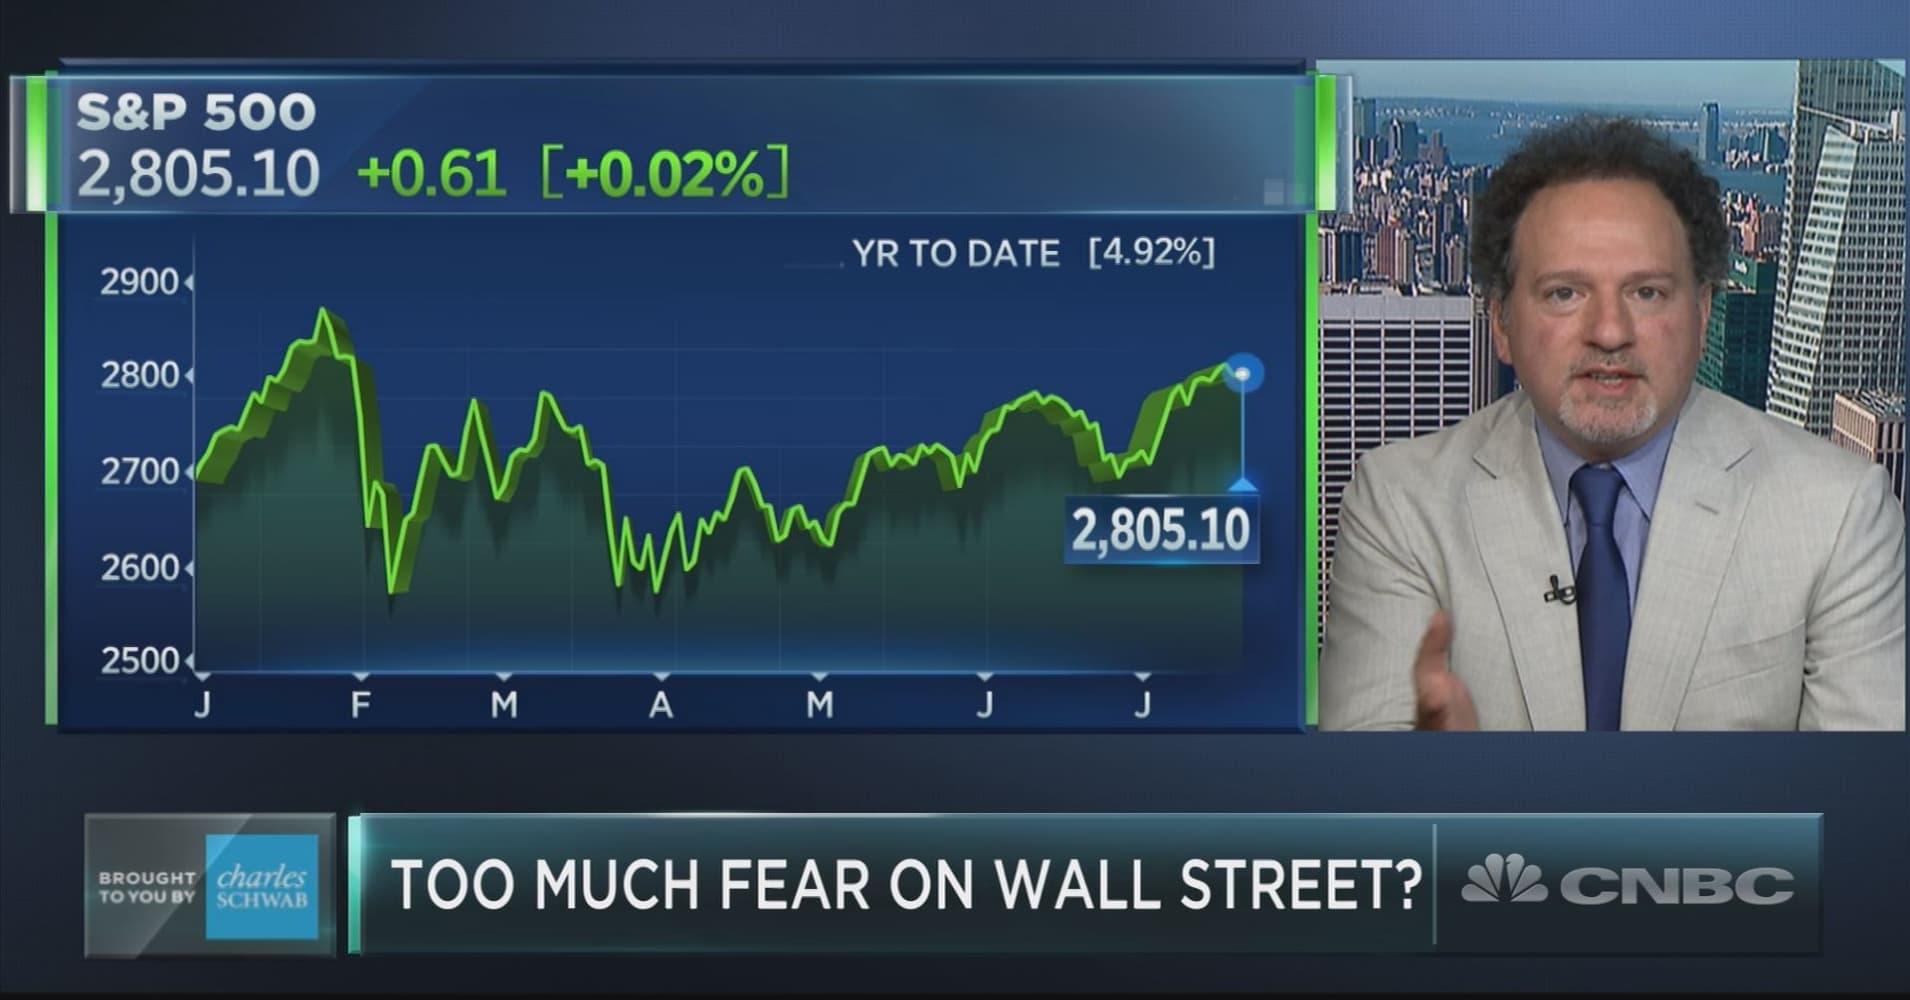 Wall Street letting fear overtake rational investing, market veteran says